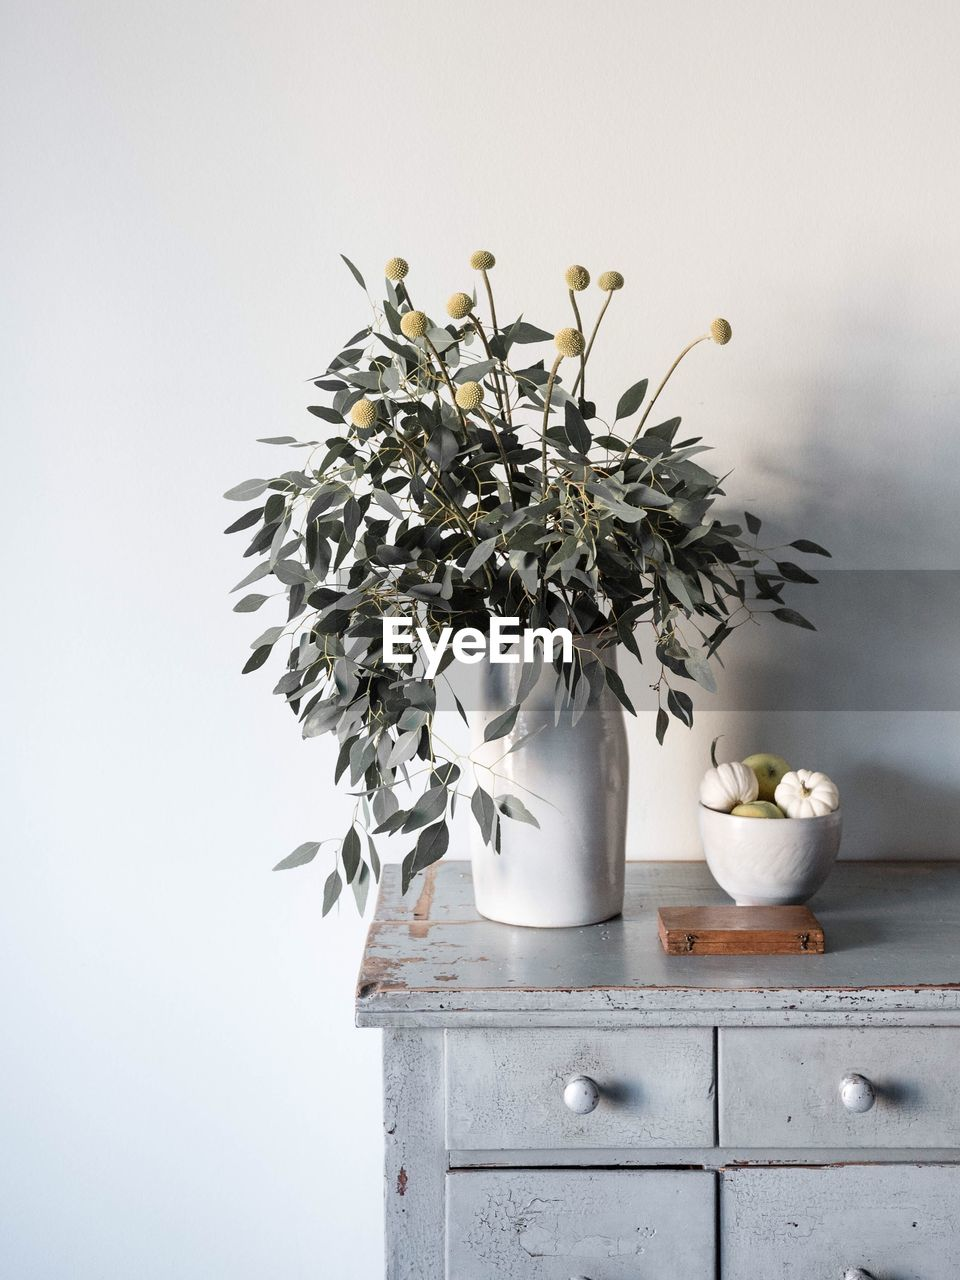 High Angle View Of Flower Vase By Food In Bowl On Table